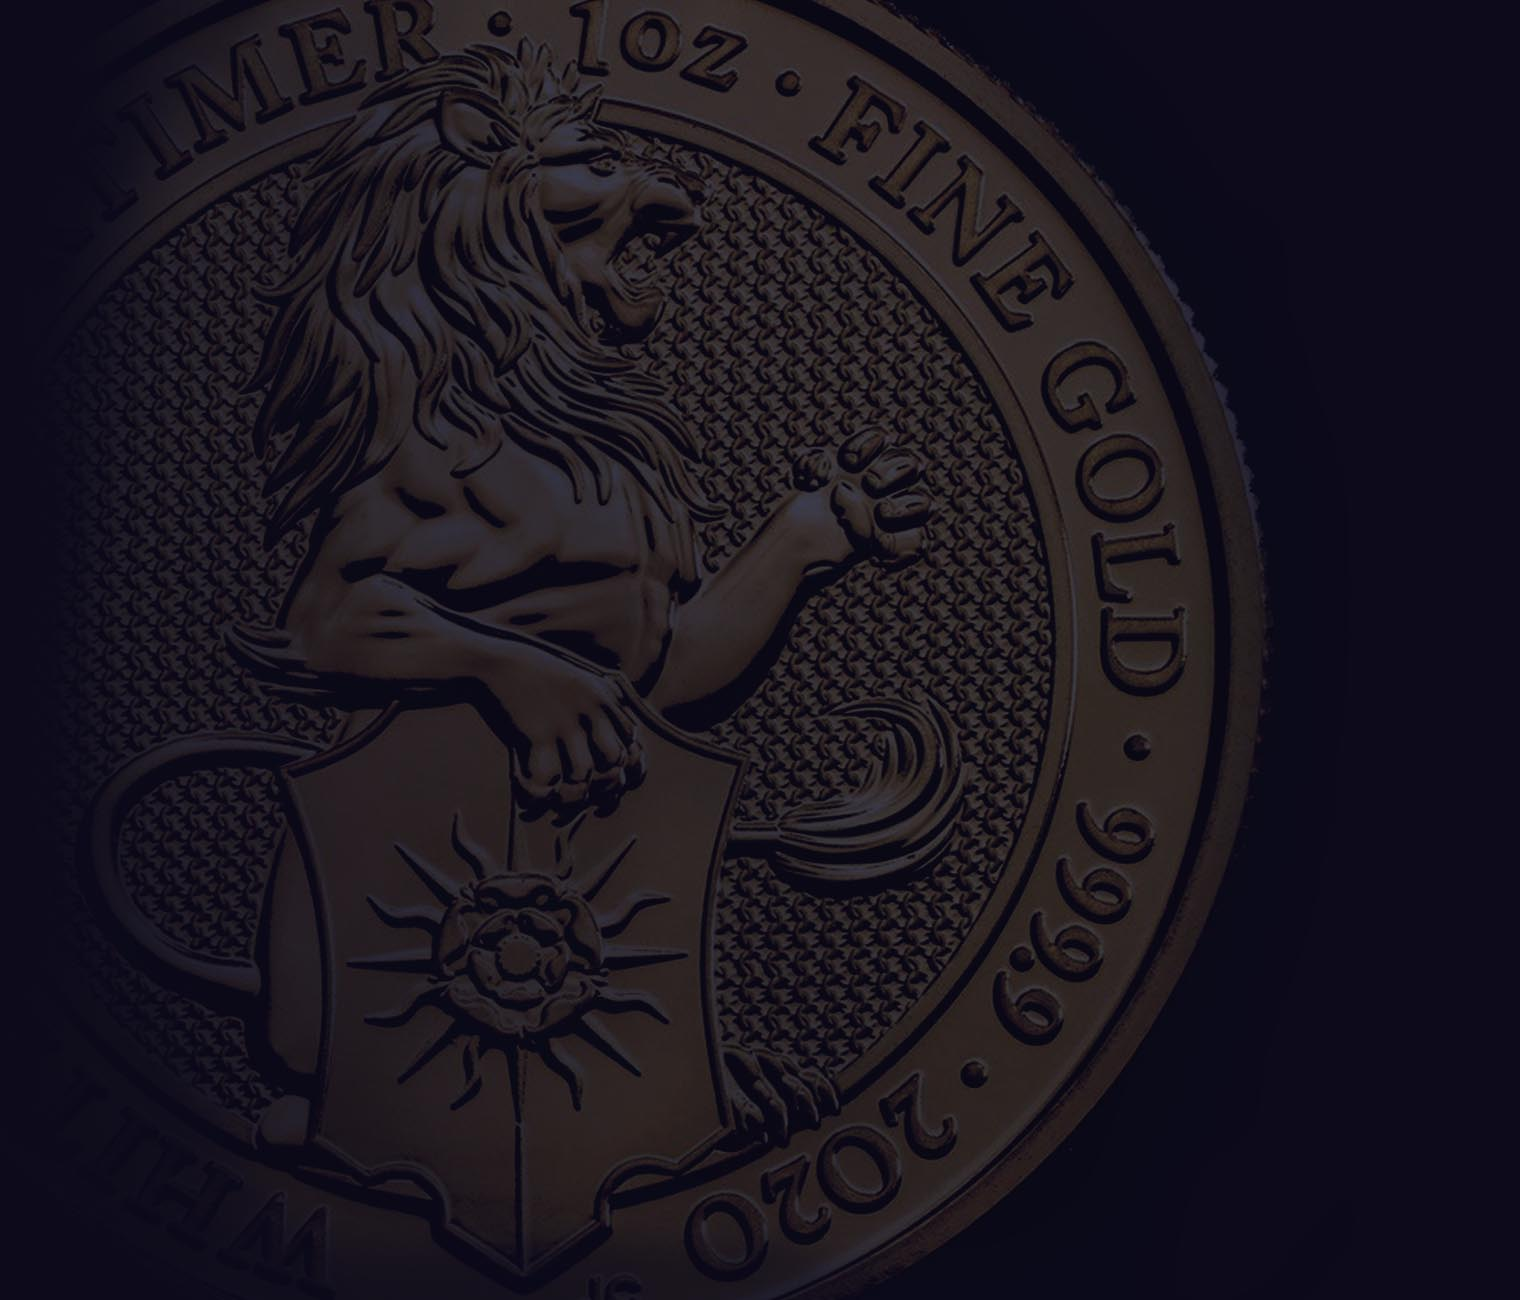 2020 Queen's Beasts White Lion of Mortimer Coin